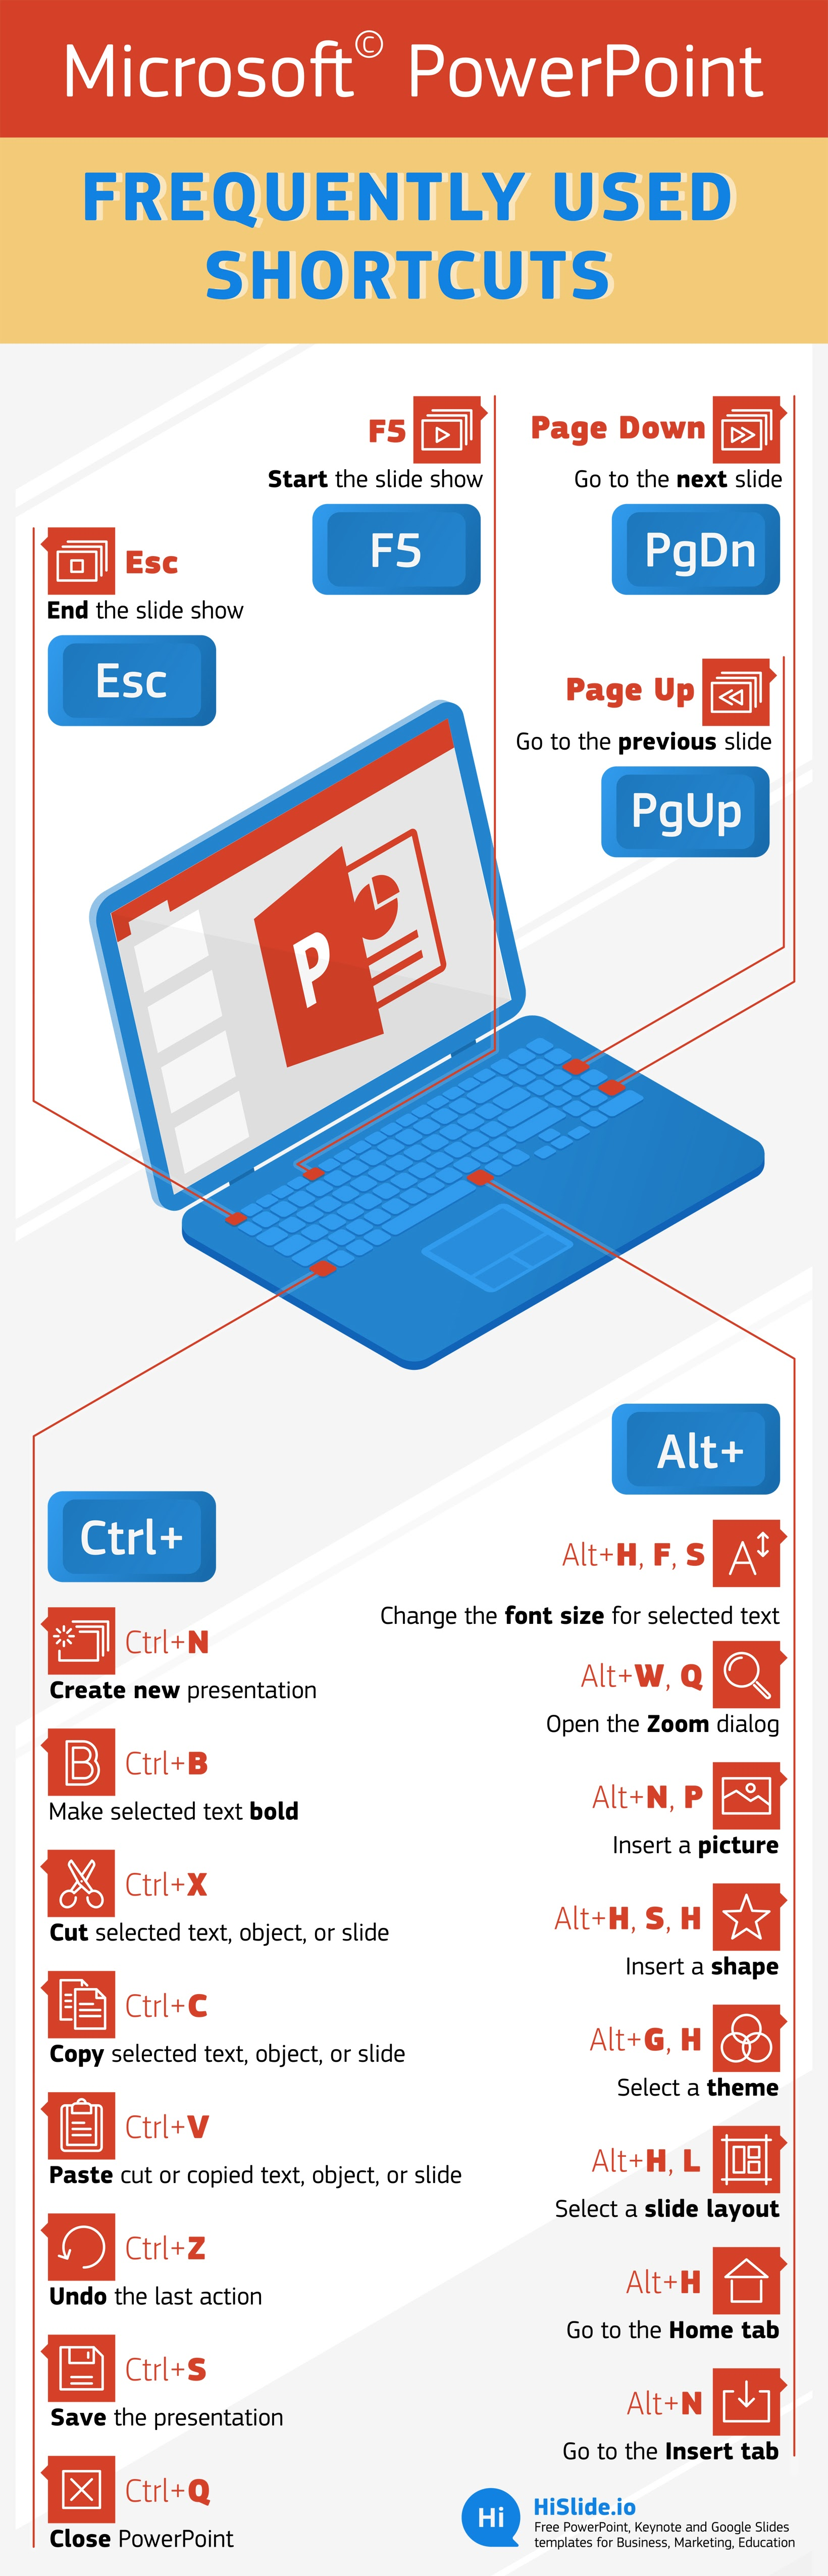 Power Point Frequently Used Shortcuts #infographic